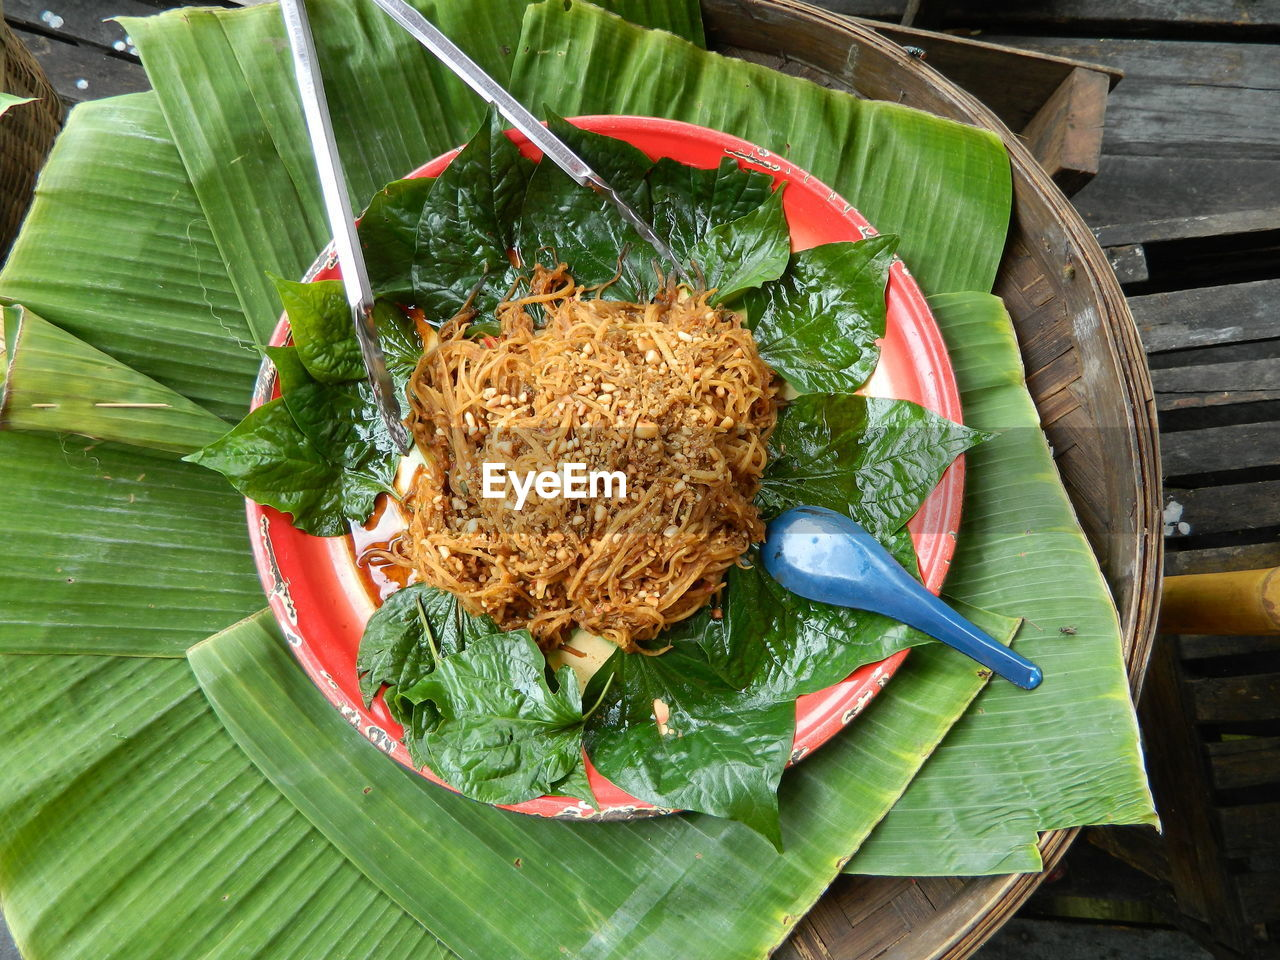 leaf, food and drink, plant part, food, freshness, green color, banana leaf, leaves, ready-to-eat, no people, healthy eating, close-up, table, kitchen utensil, high angle view, eating utensil, indoors, directly above, still life, wellbeing, snack